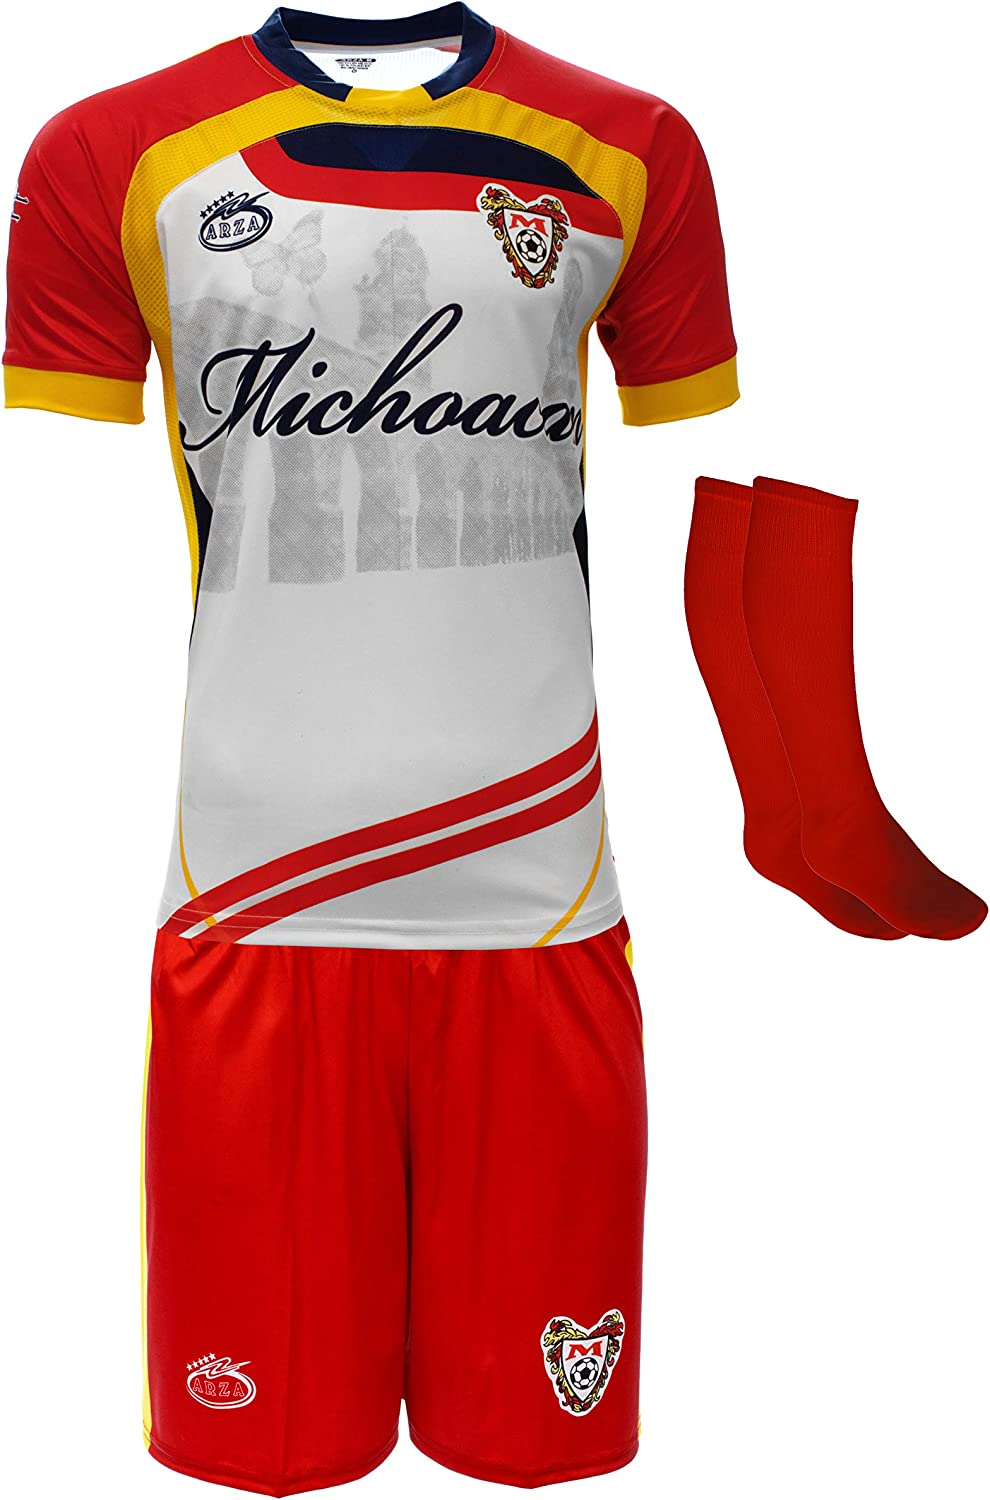 Arza Sport Michoacan Mexico Uniform Color White/Red Jersey,Short,Socks and Number